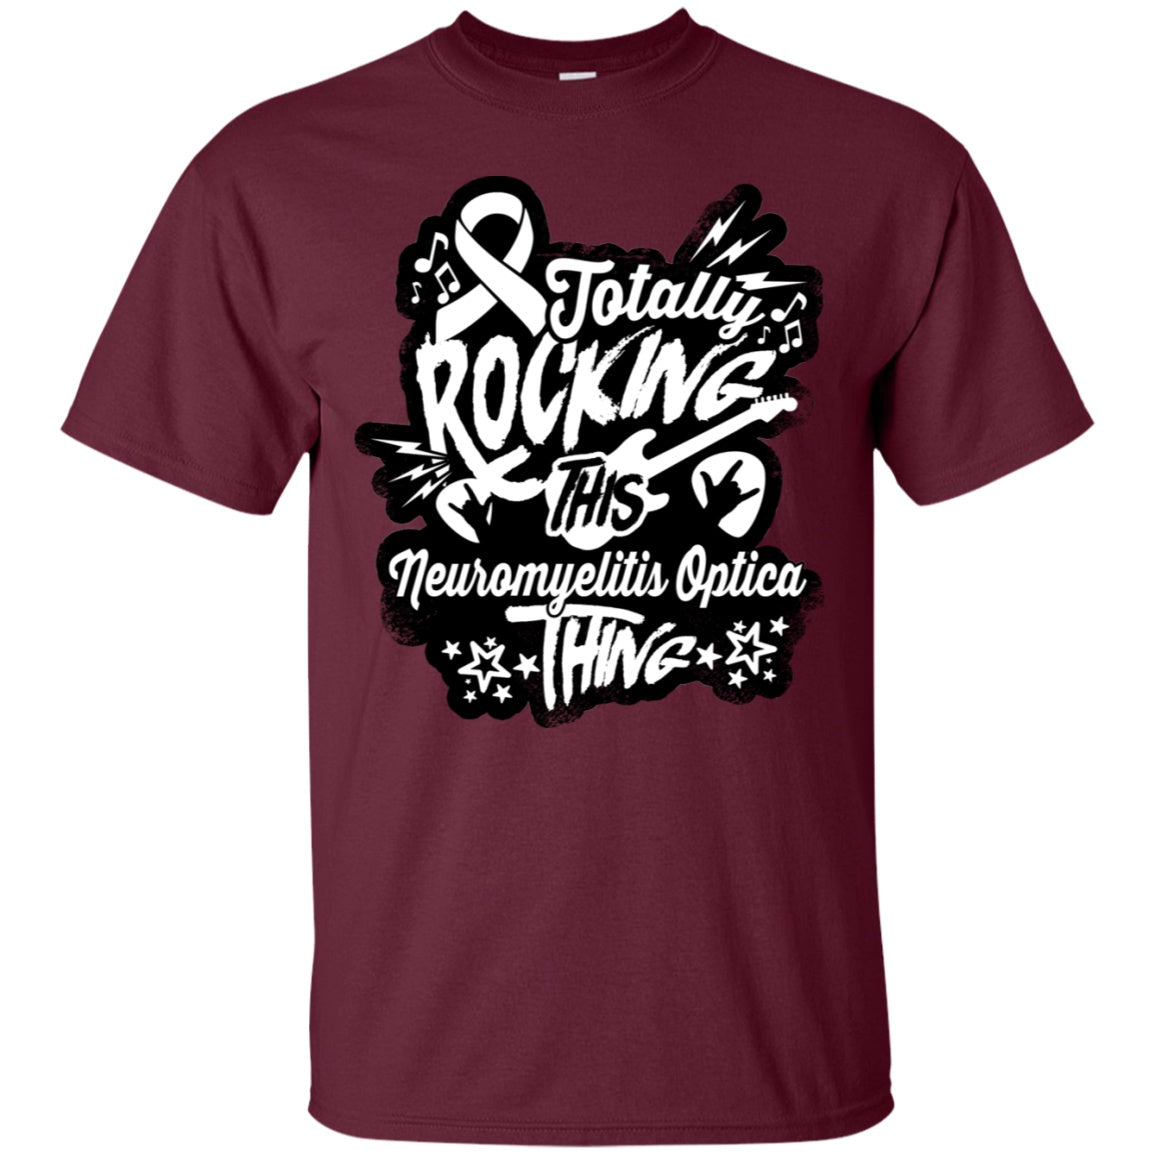 Rocking Neuromyelitis Optica Unisex Shirt - The Unchargeables